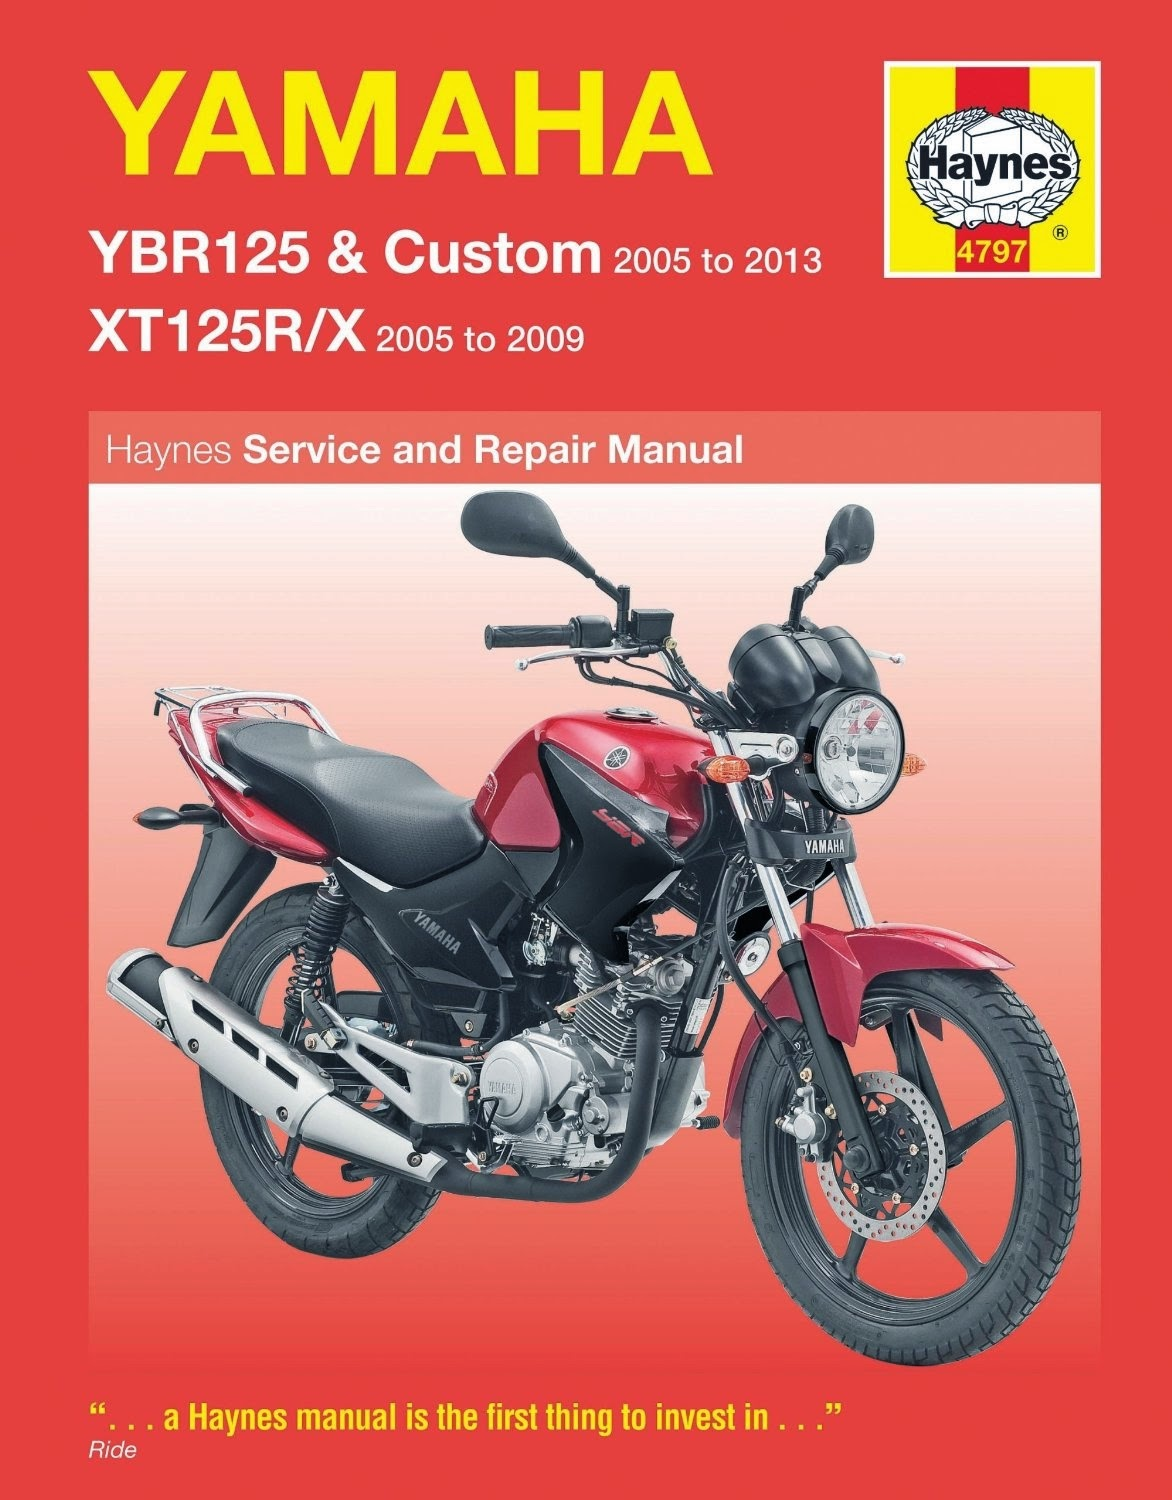 need a haynes workshop service manual for you yamaha ybr 125 / xt 125 why  not buy it from here , its probably the cheapest anyway and you support the  blog .